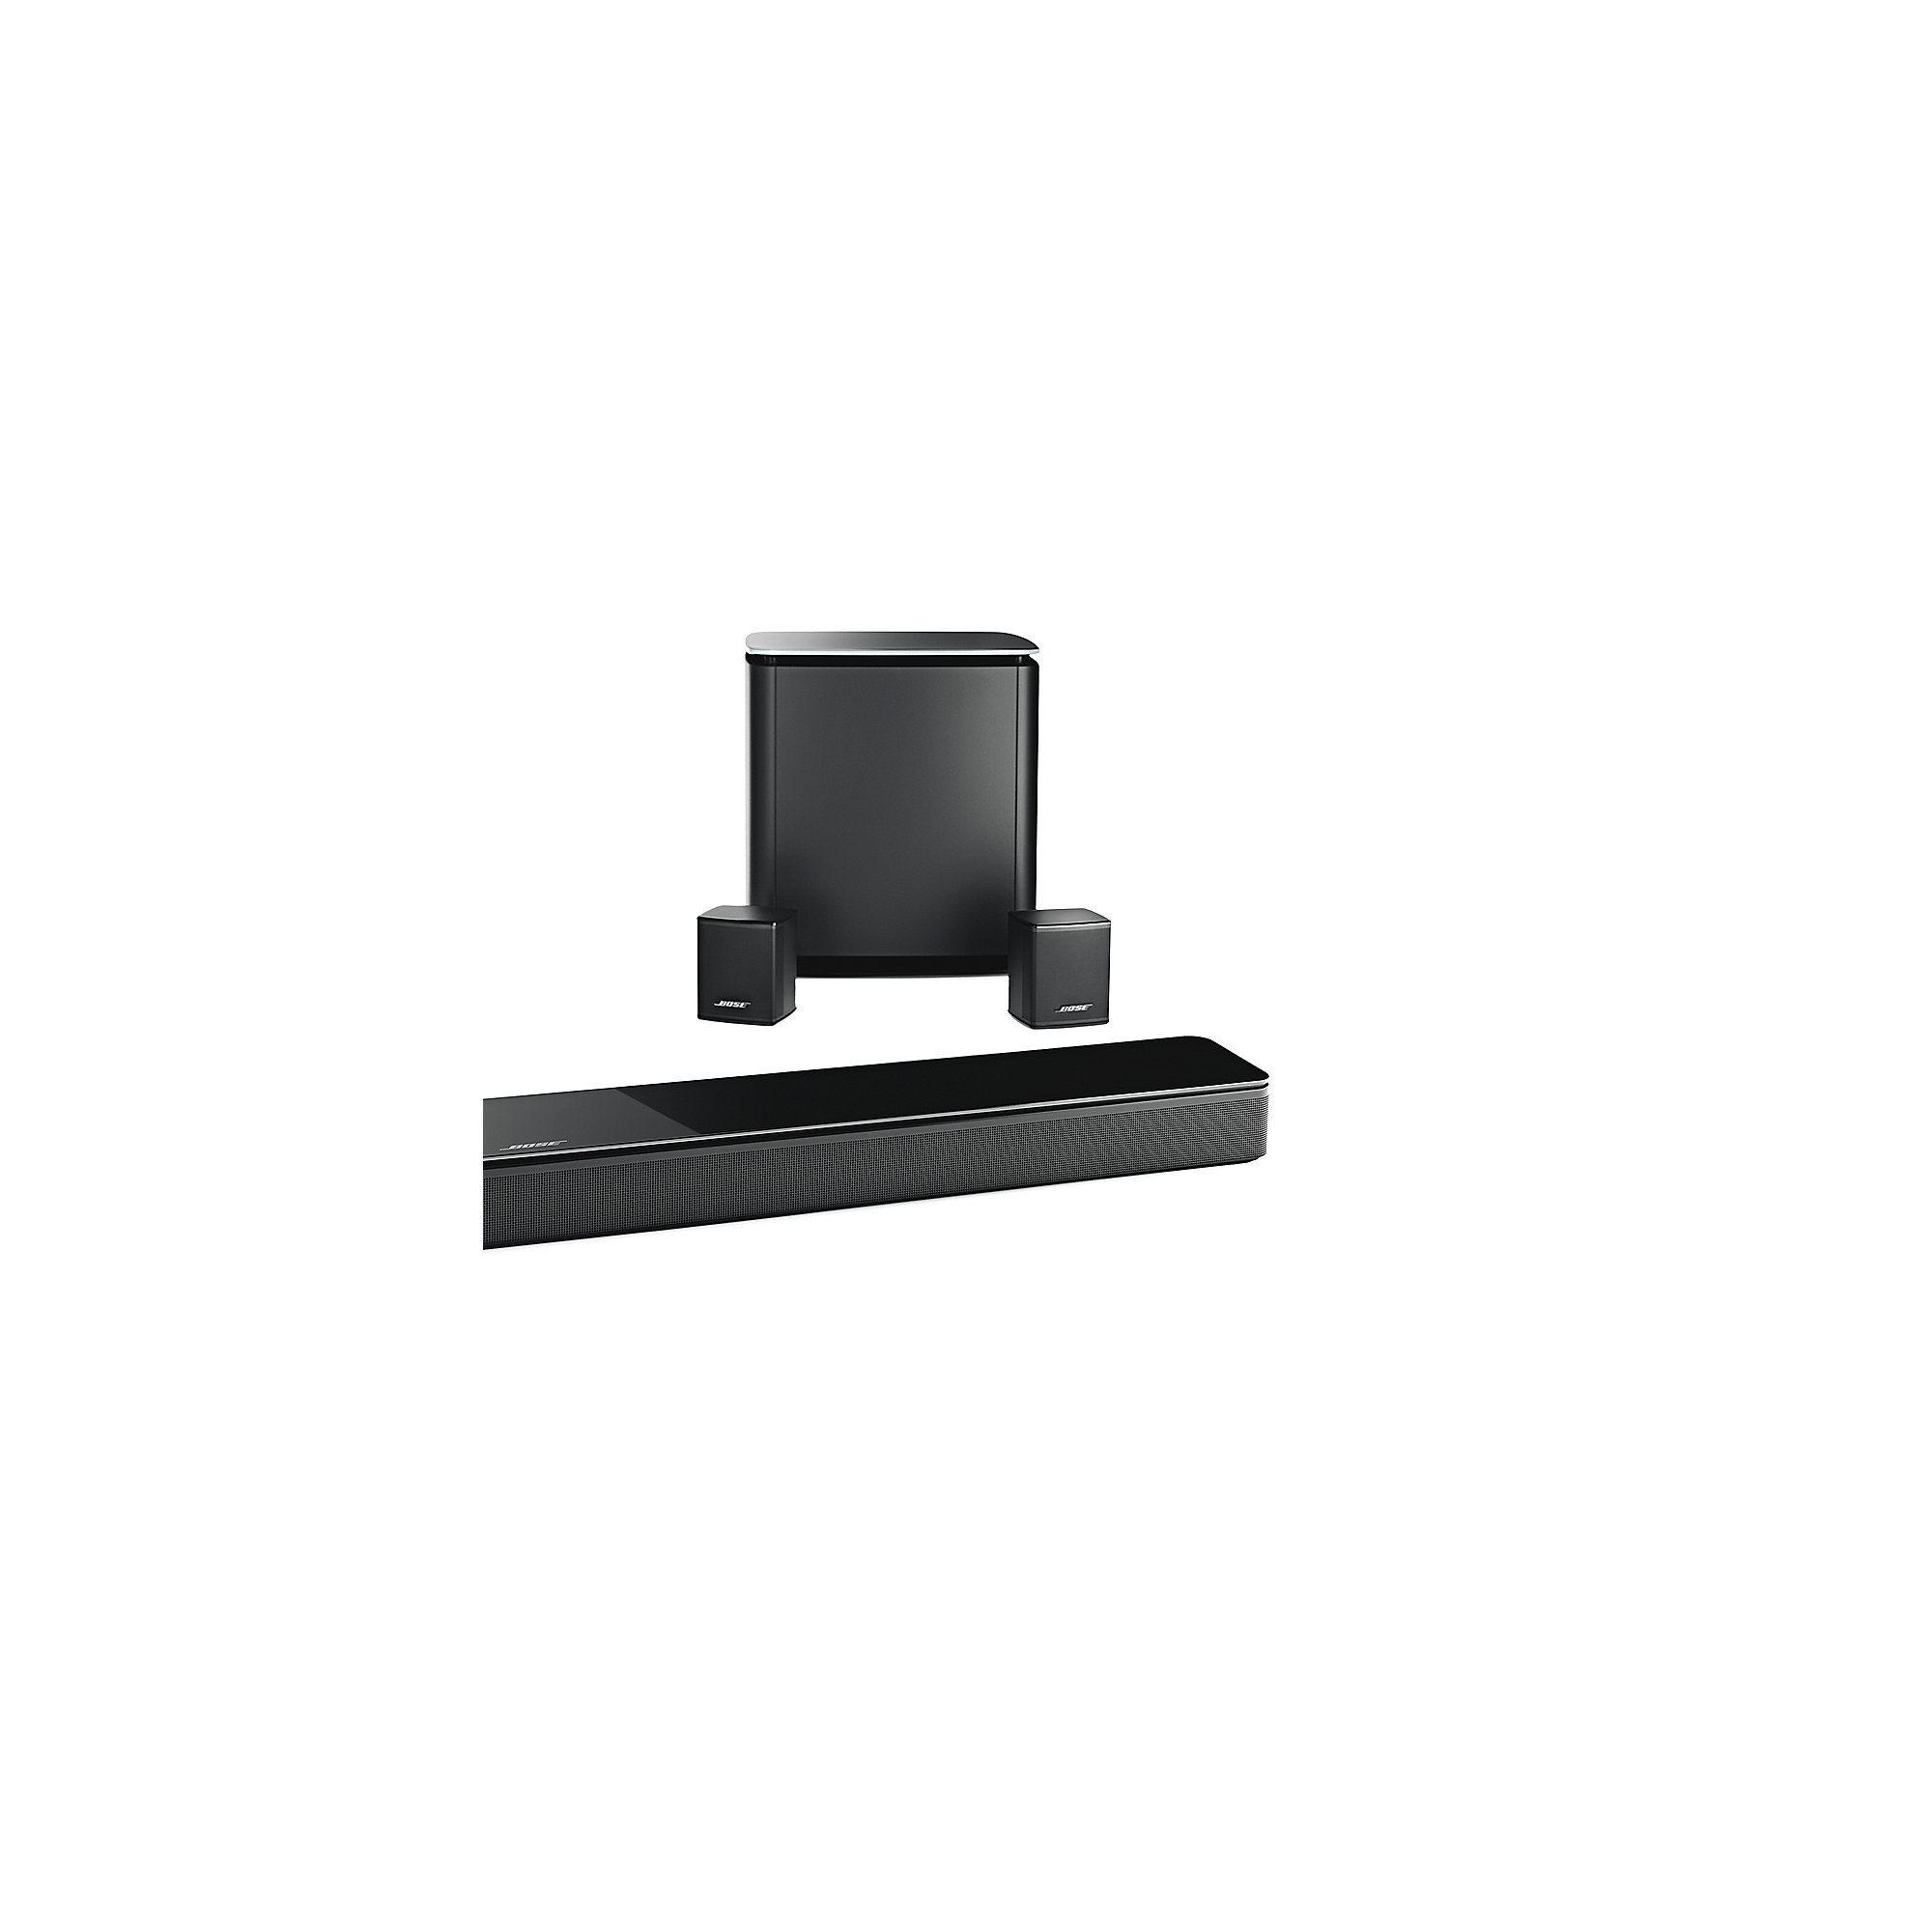 BOSE Acoustimass 300 Wireless Bass Module - schwarz